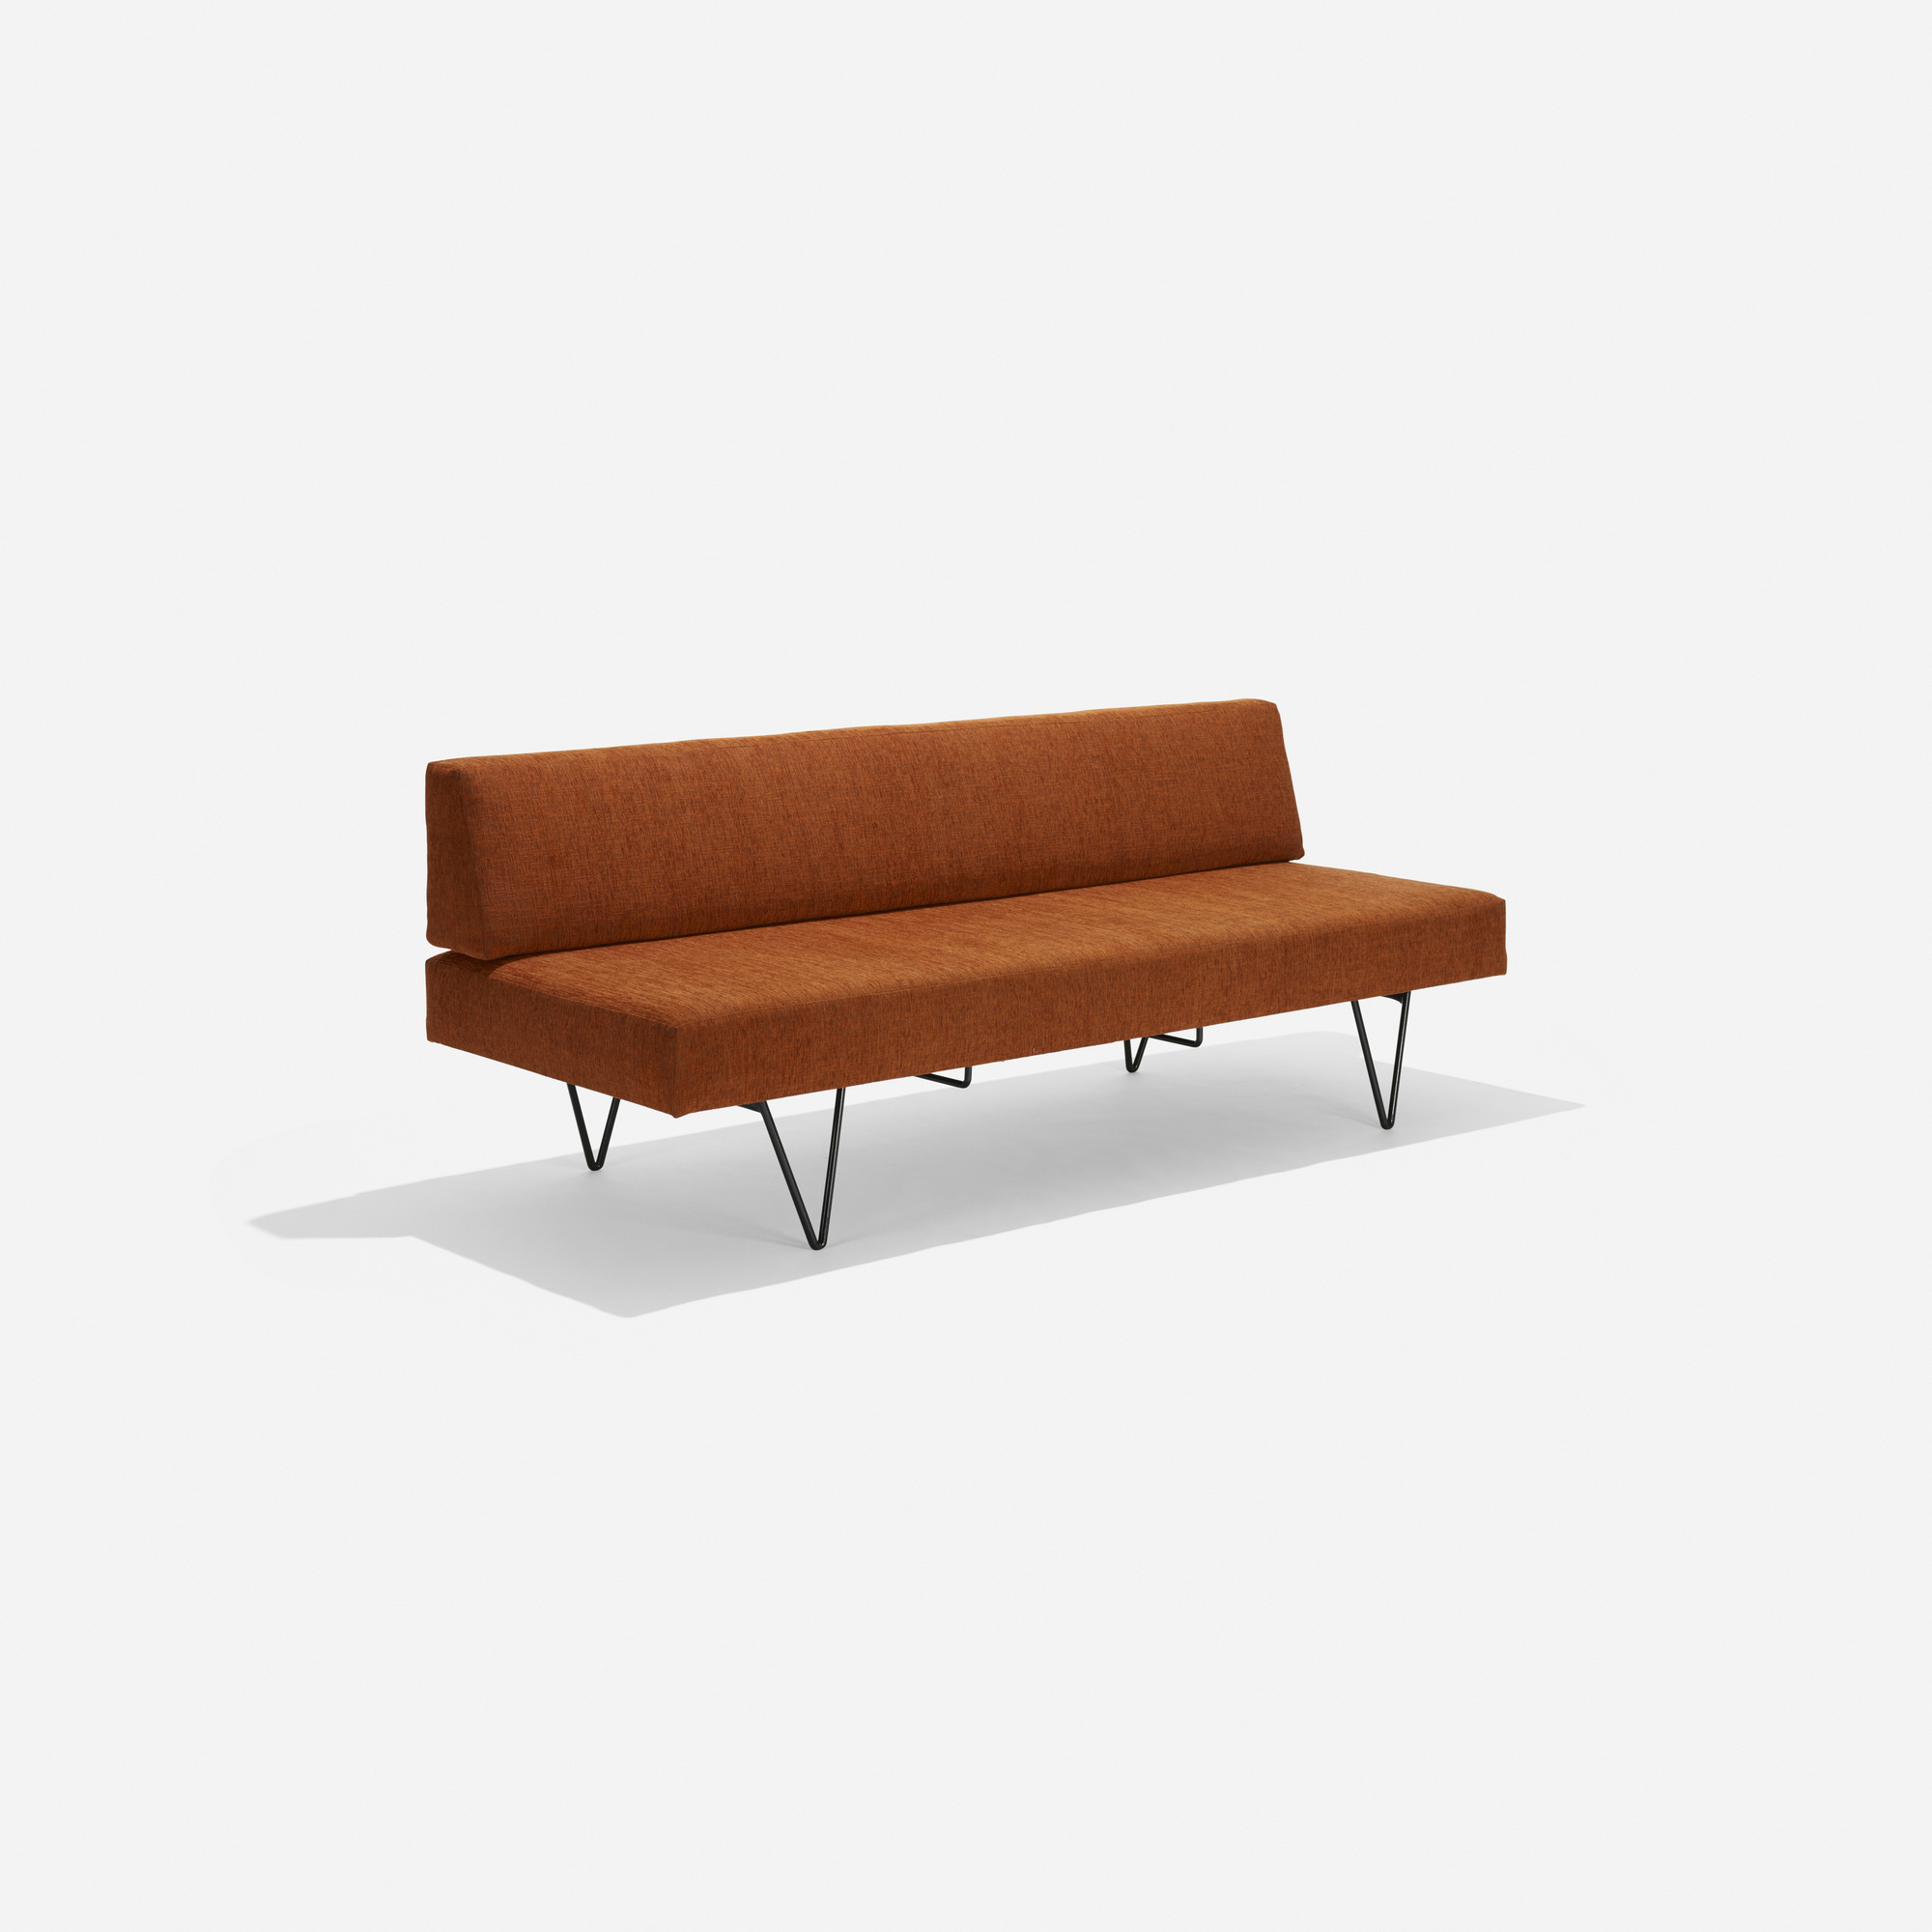 173 adrian pearsall daybed model 102 l u003c american design 15